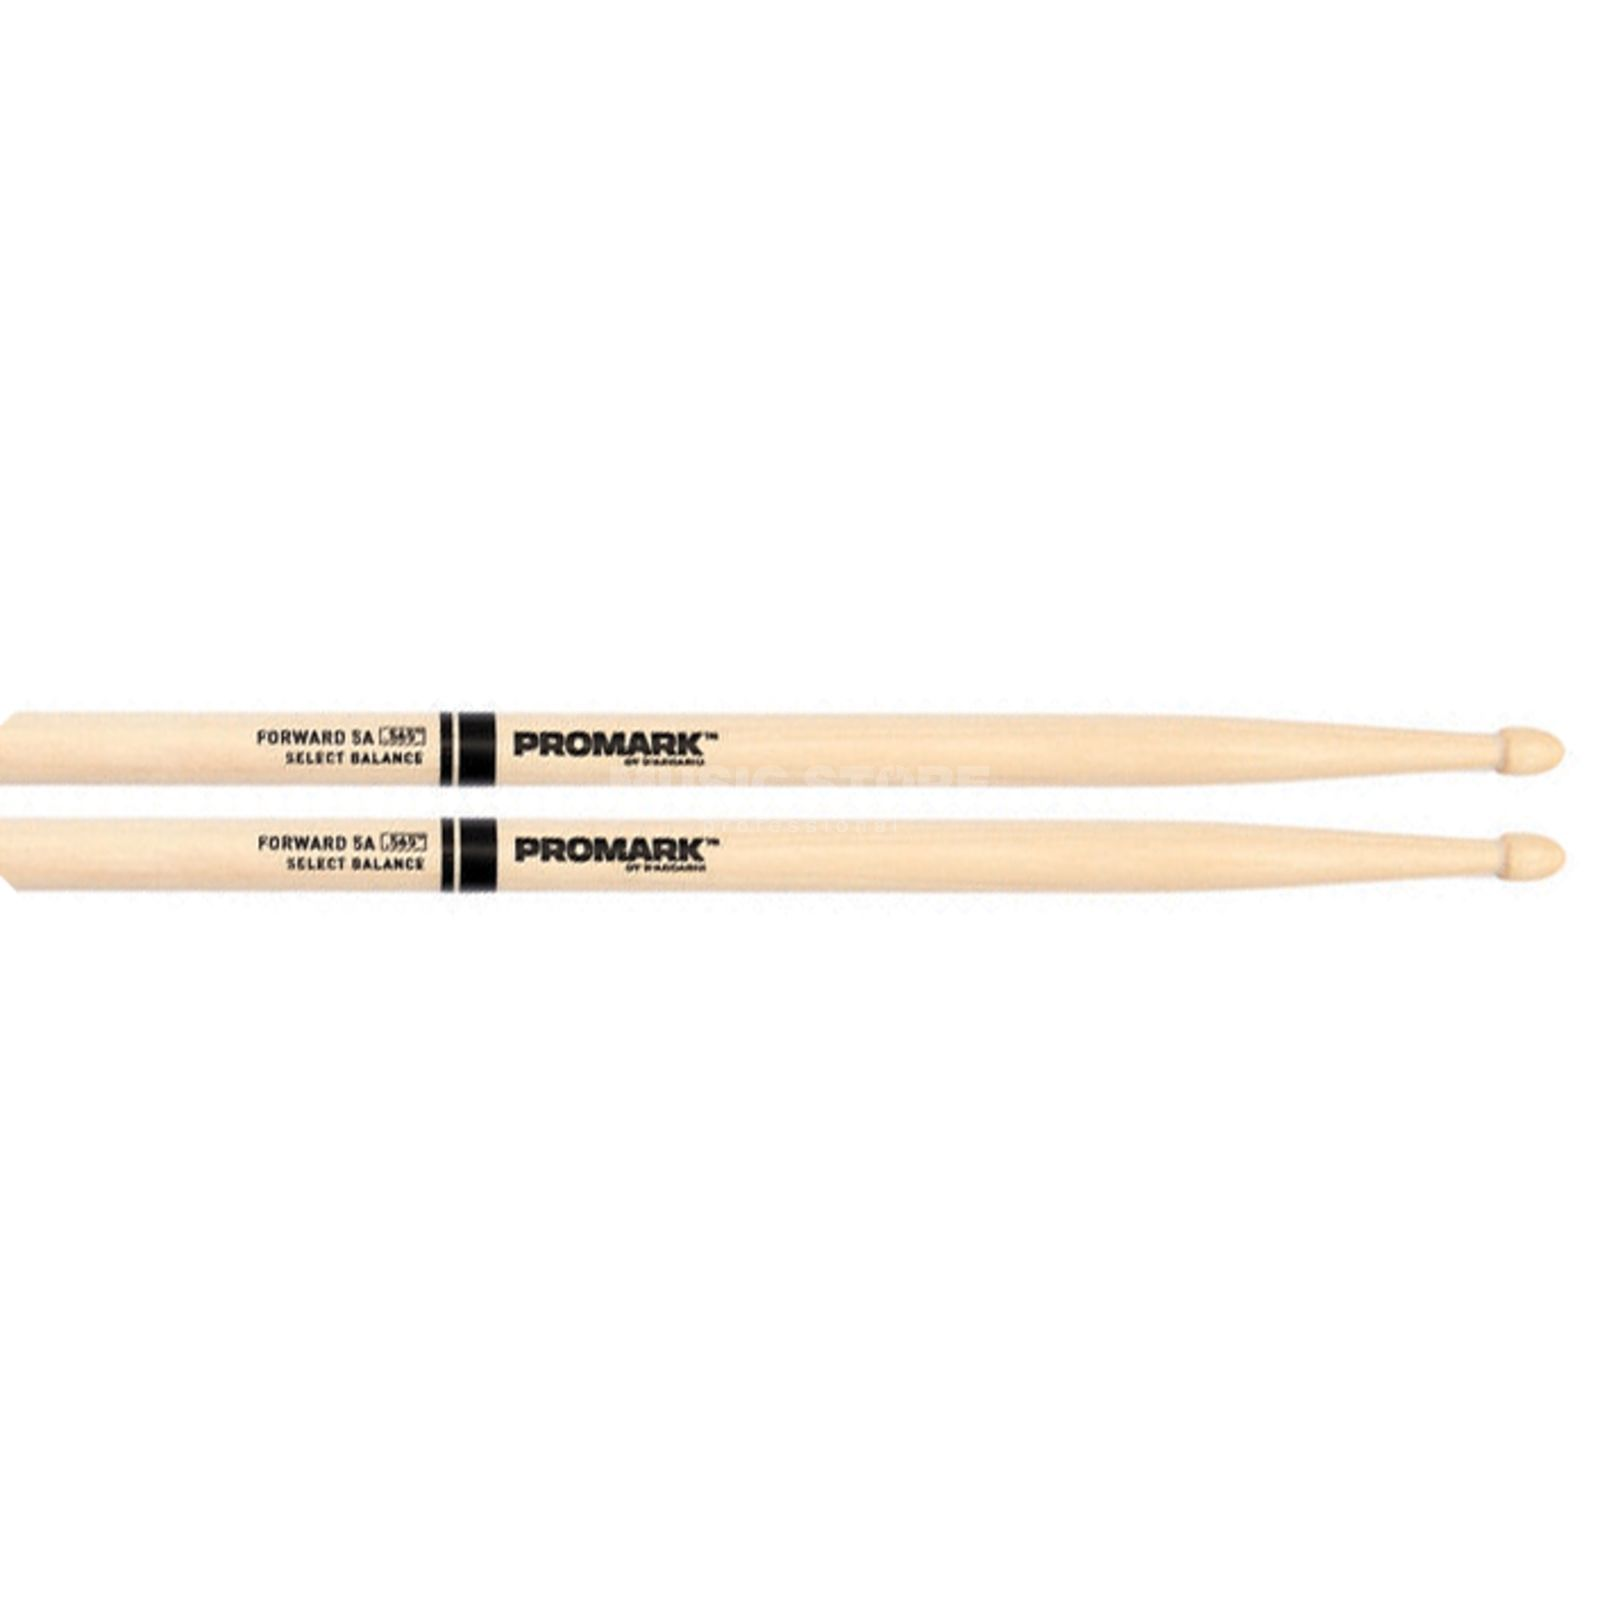 PRO-MARK Select Balance Sticks FBH565AW Forward Balance, Acorn Tip Produktbild